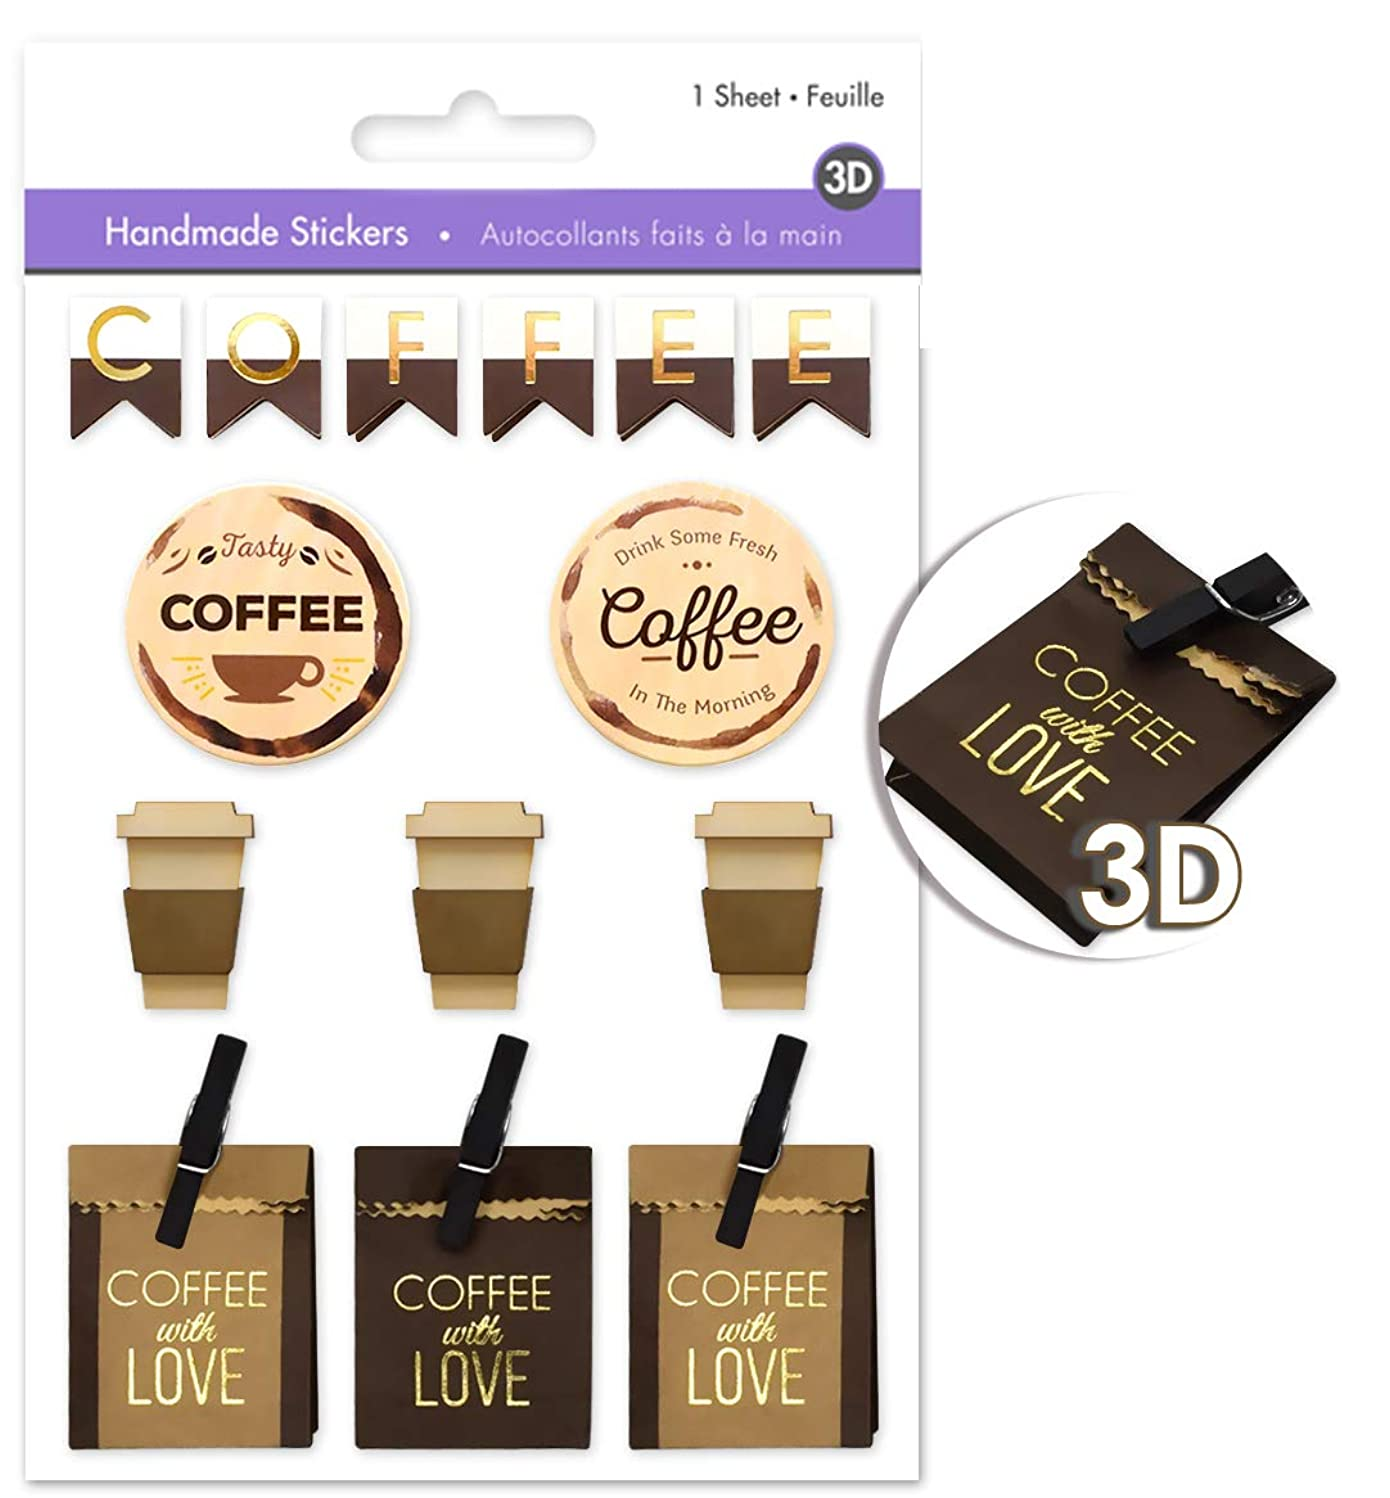 Coffee Scrapbook Stickers for Coffee Scrapbooking Stickers for Coffee Scrapbook with Multi-Texture Materials - Coffee Stickers, Handmade Paper Stickers, Pop-up Stickers, Layered Stickers